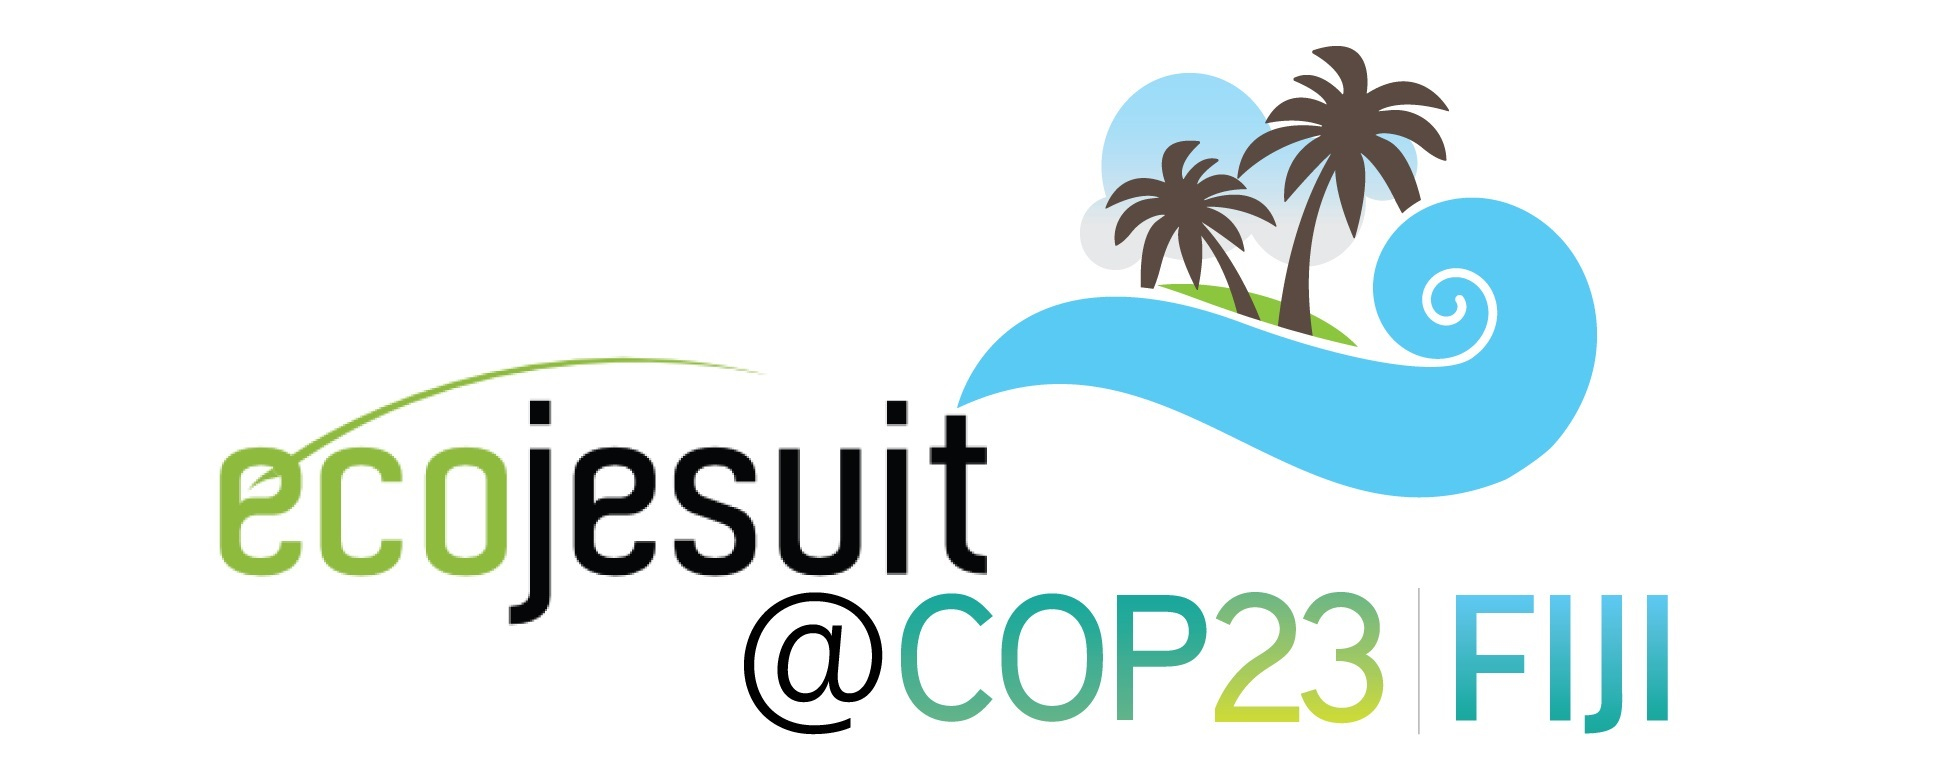 Engaging with a global process towards a new and universal solidarity: An Ecojesuit gathering at COP23-Fiji in Bonn